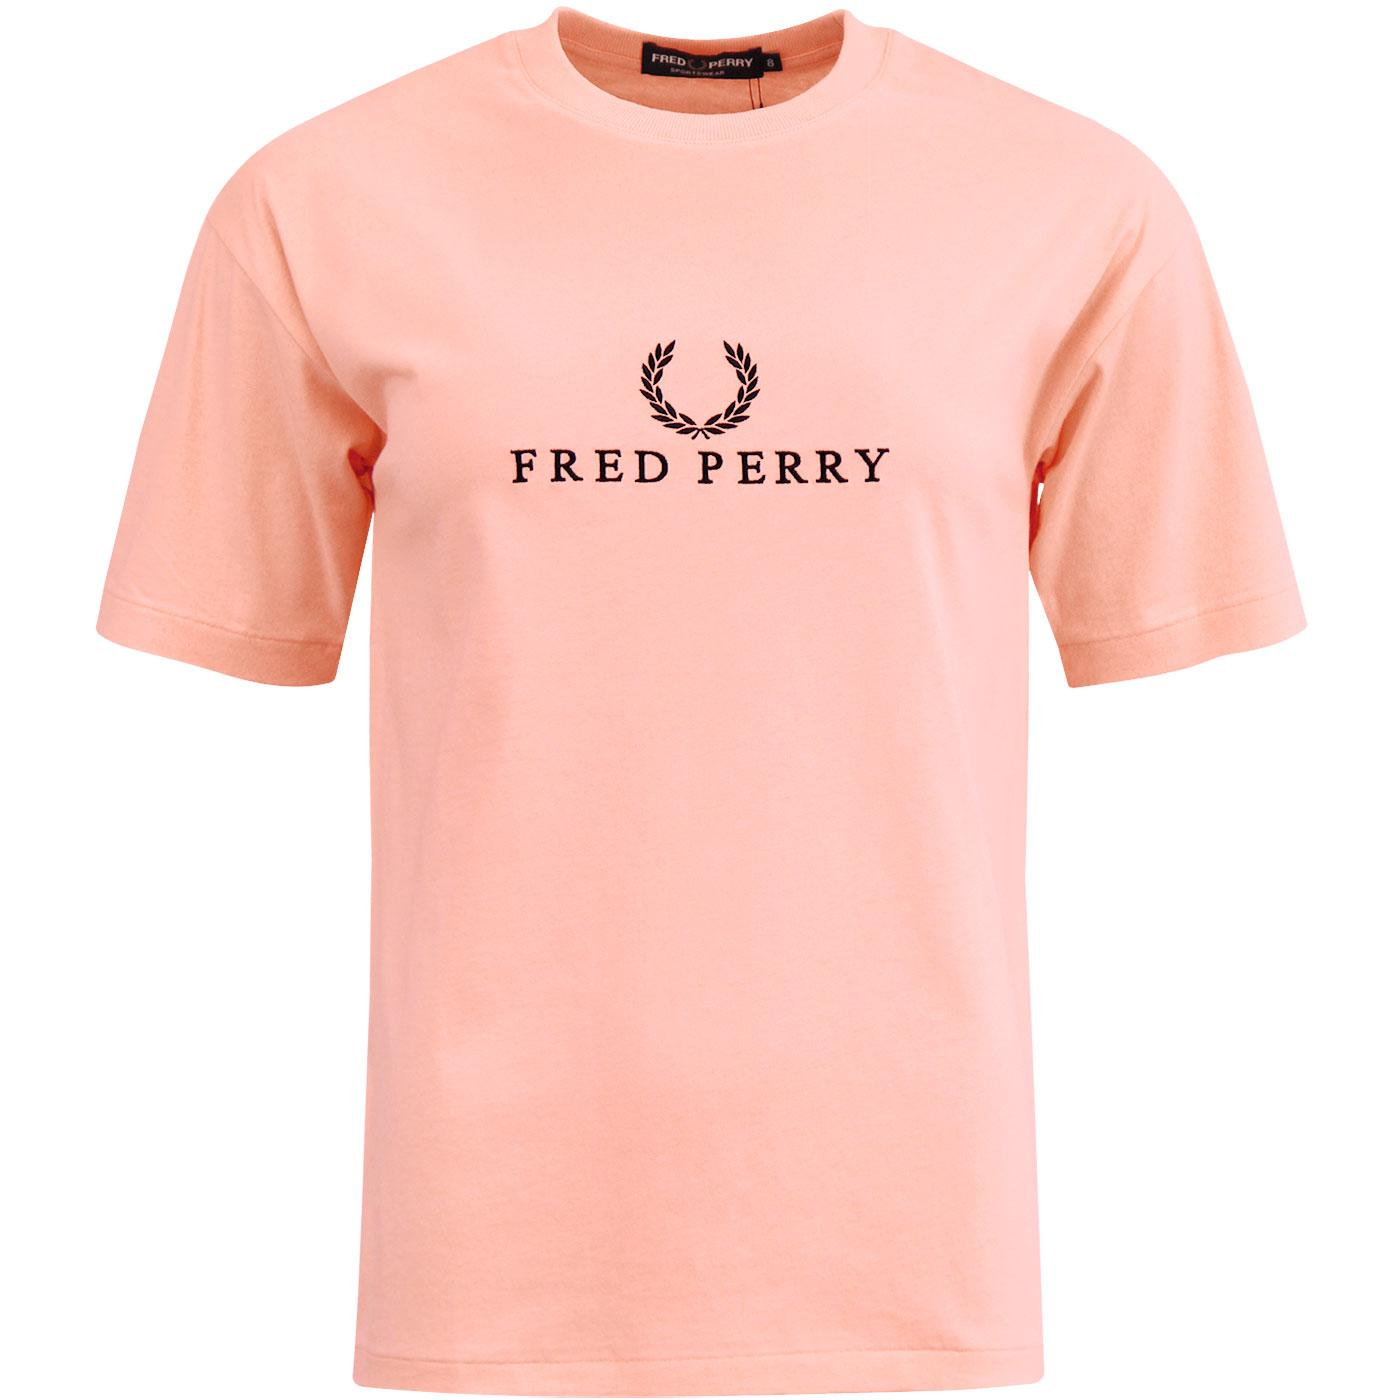 FRED PERRY Women's Retro Embroidered Logo T-Shirt